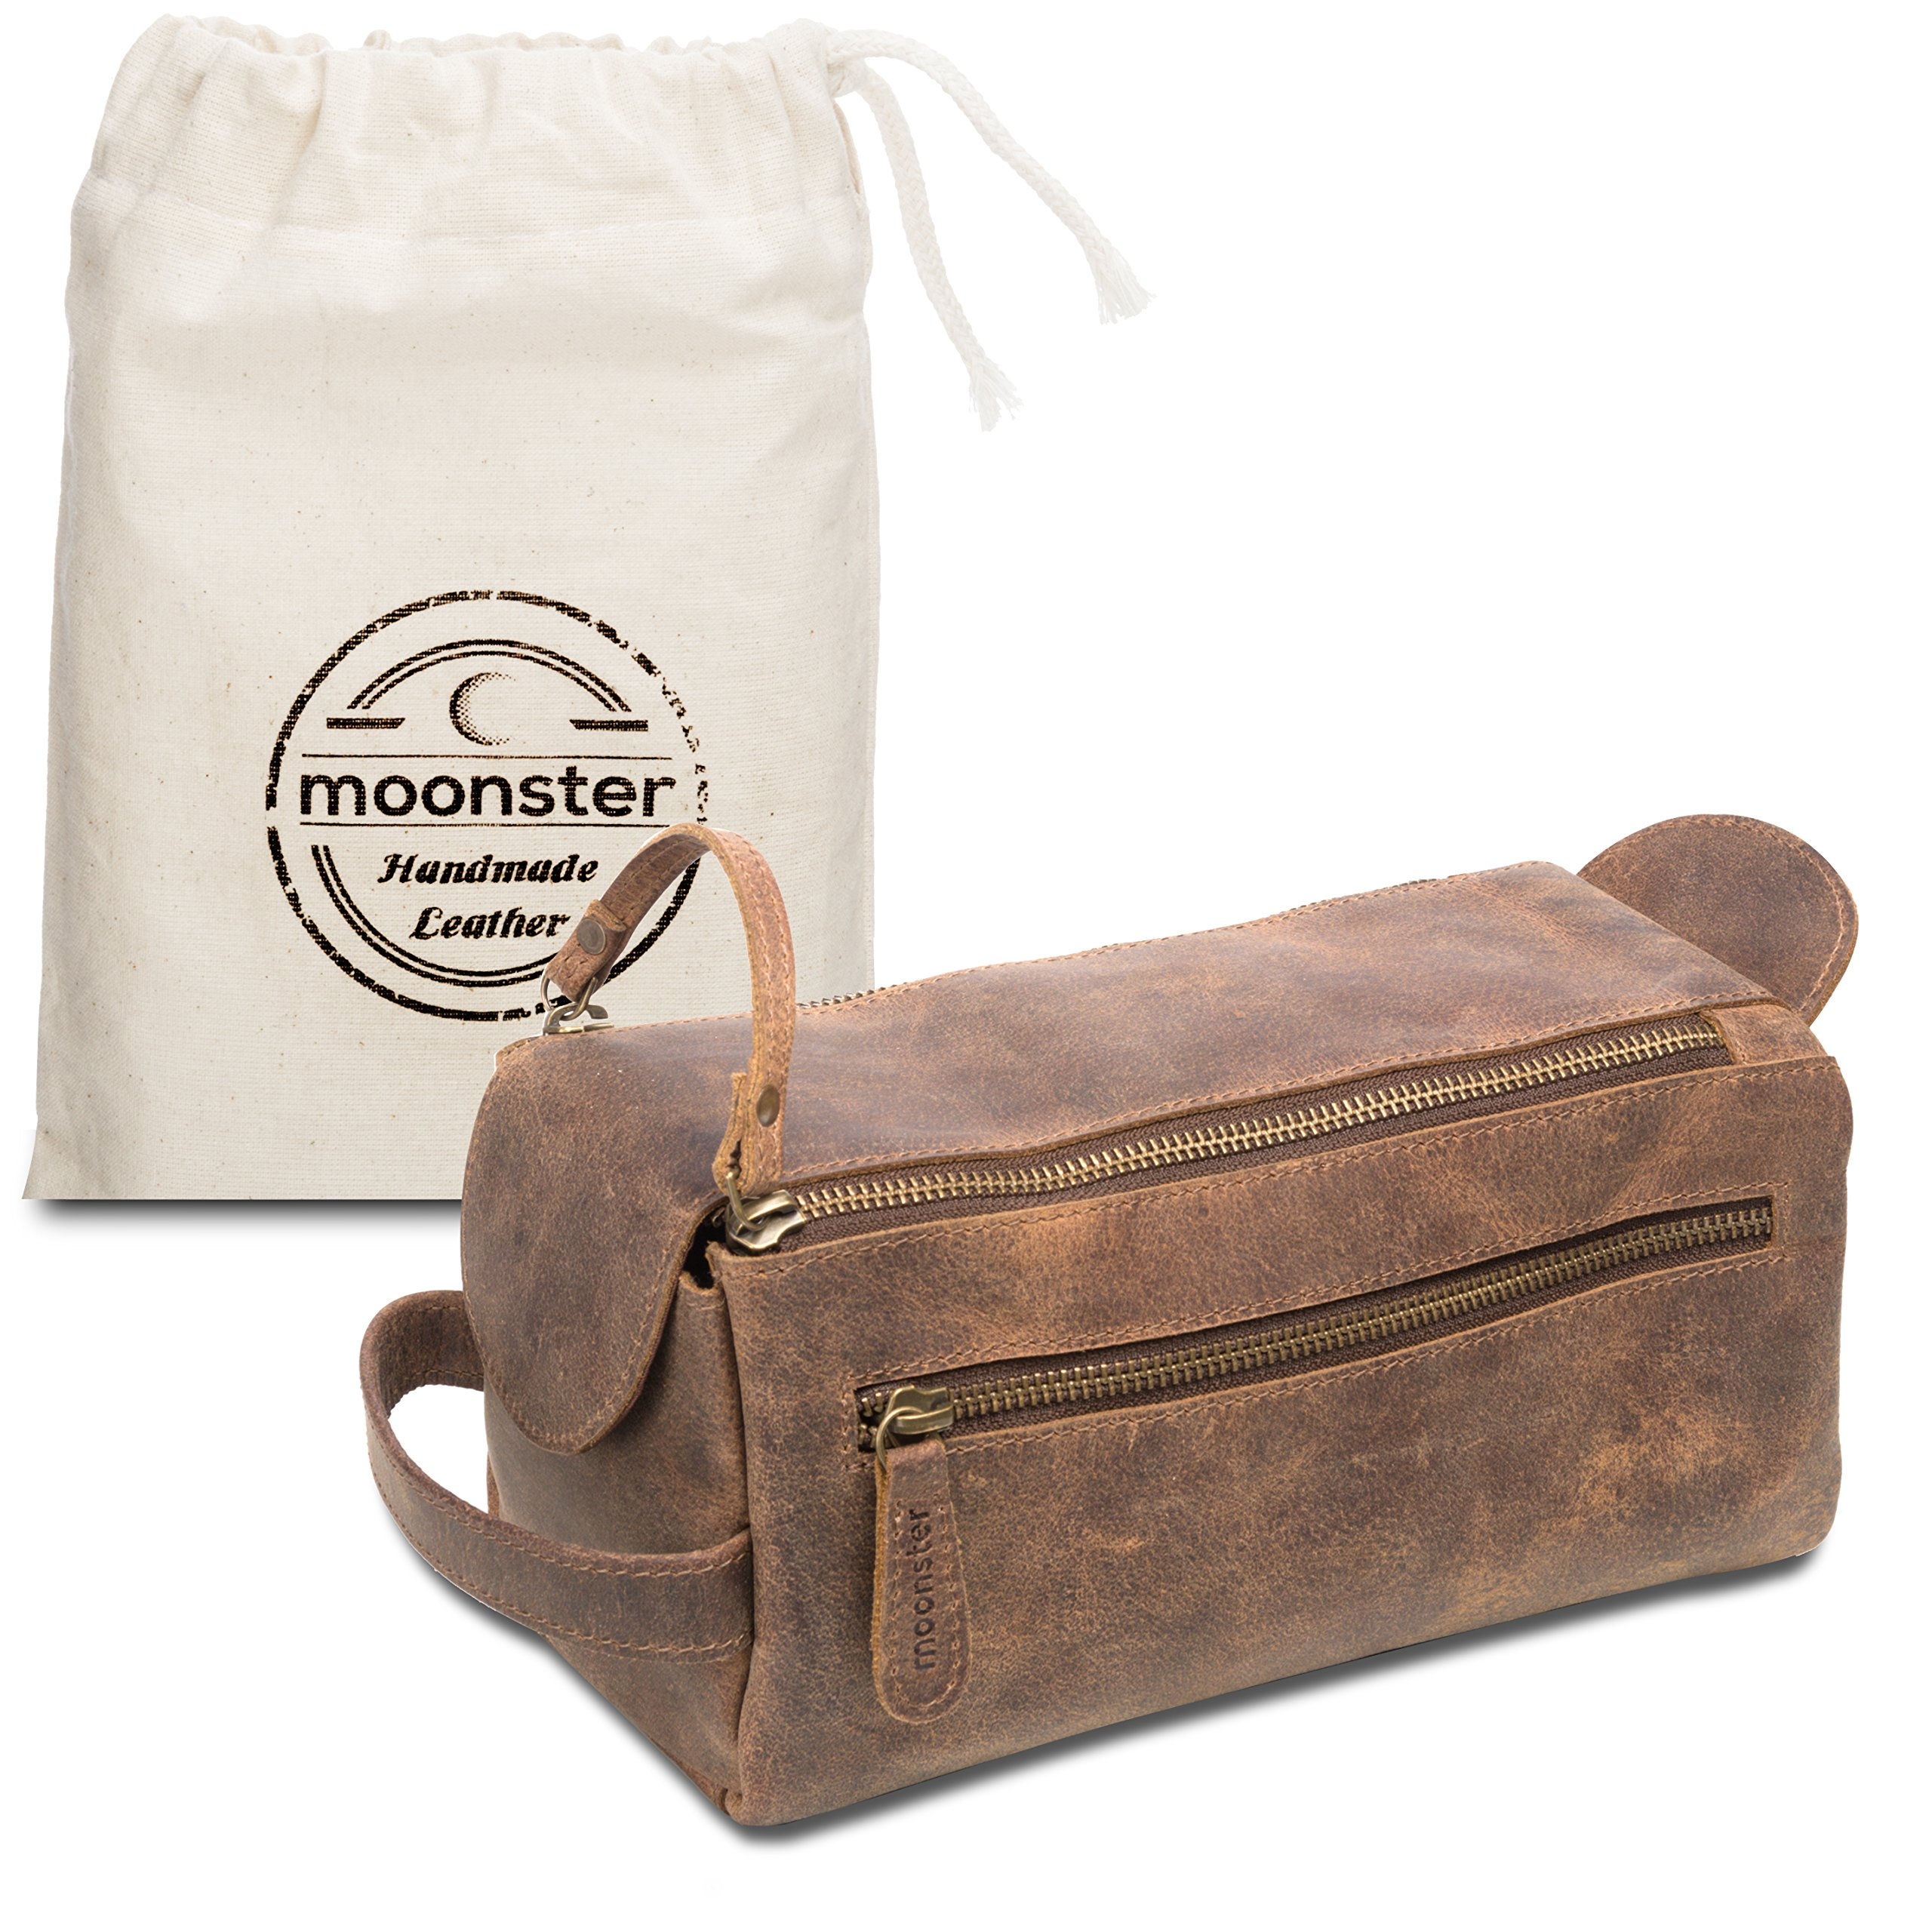 Leather Toiletry Bag for Men - Stylish, Practical and Thicker Than Other Bags - This Handmade Vintage Mens Dopp Kit is Small, Sturdy and Water Resistant - Store All Your Travel Toiletries in Style by moonster